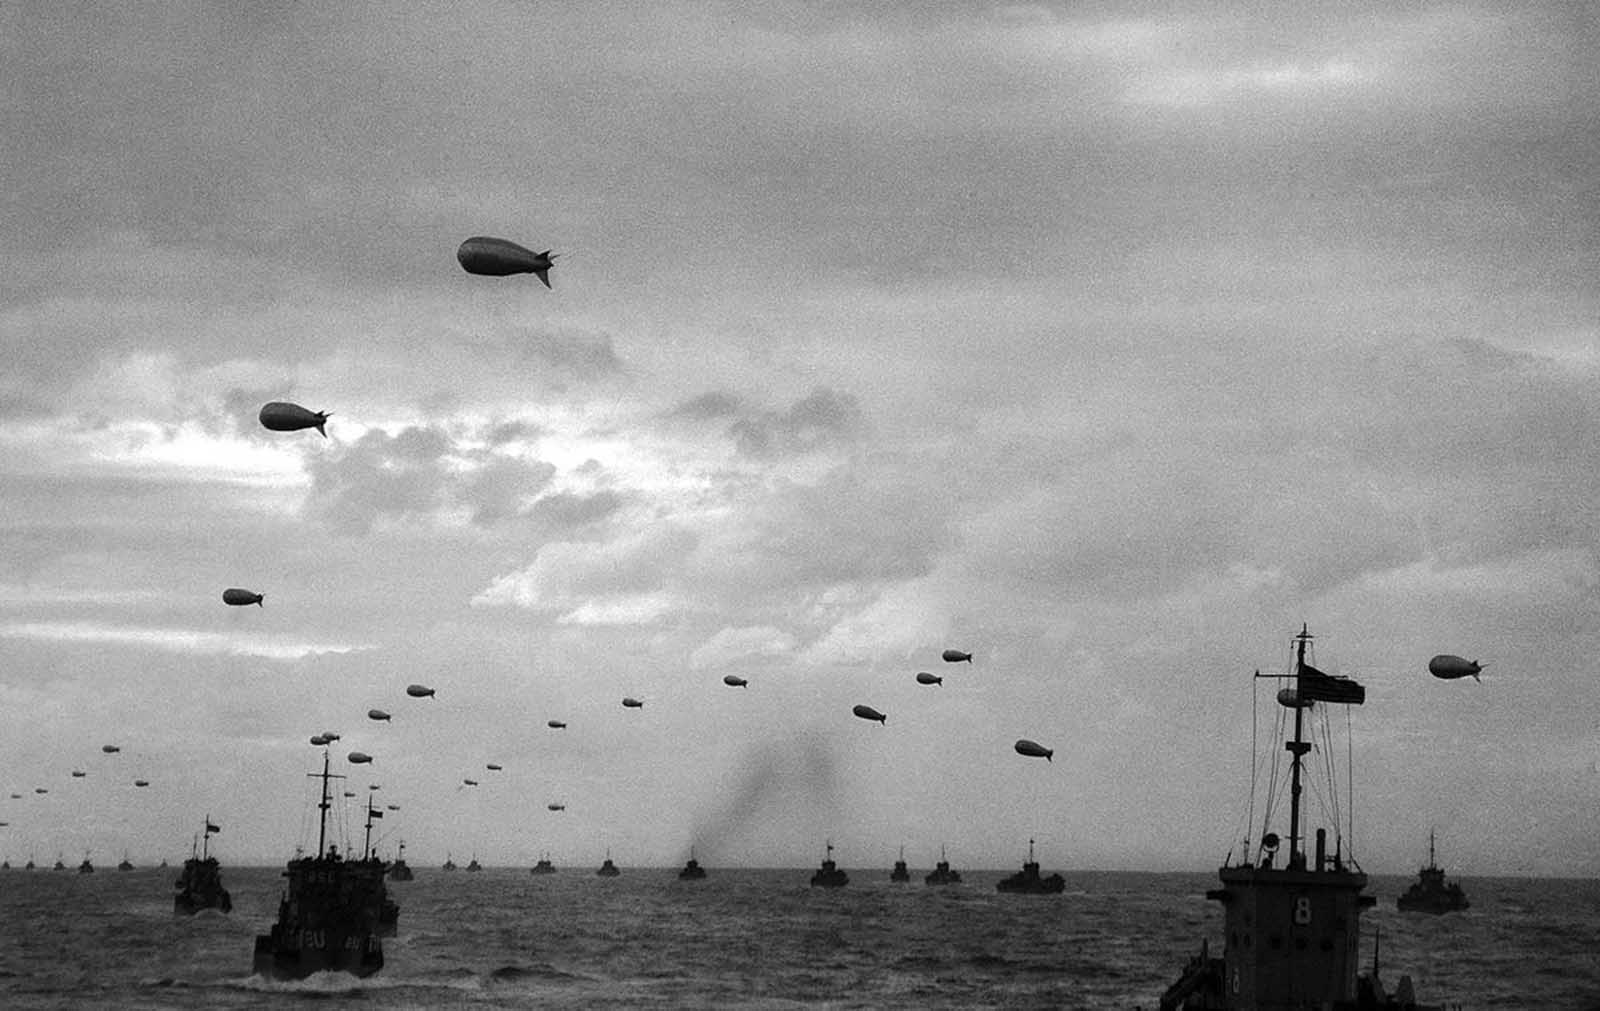 A section of the Armada of Allied landing craft with their protective barrage balloons head toward the French coast, in June of 1944.